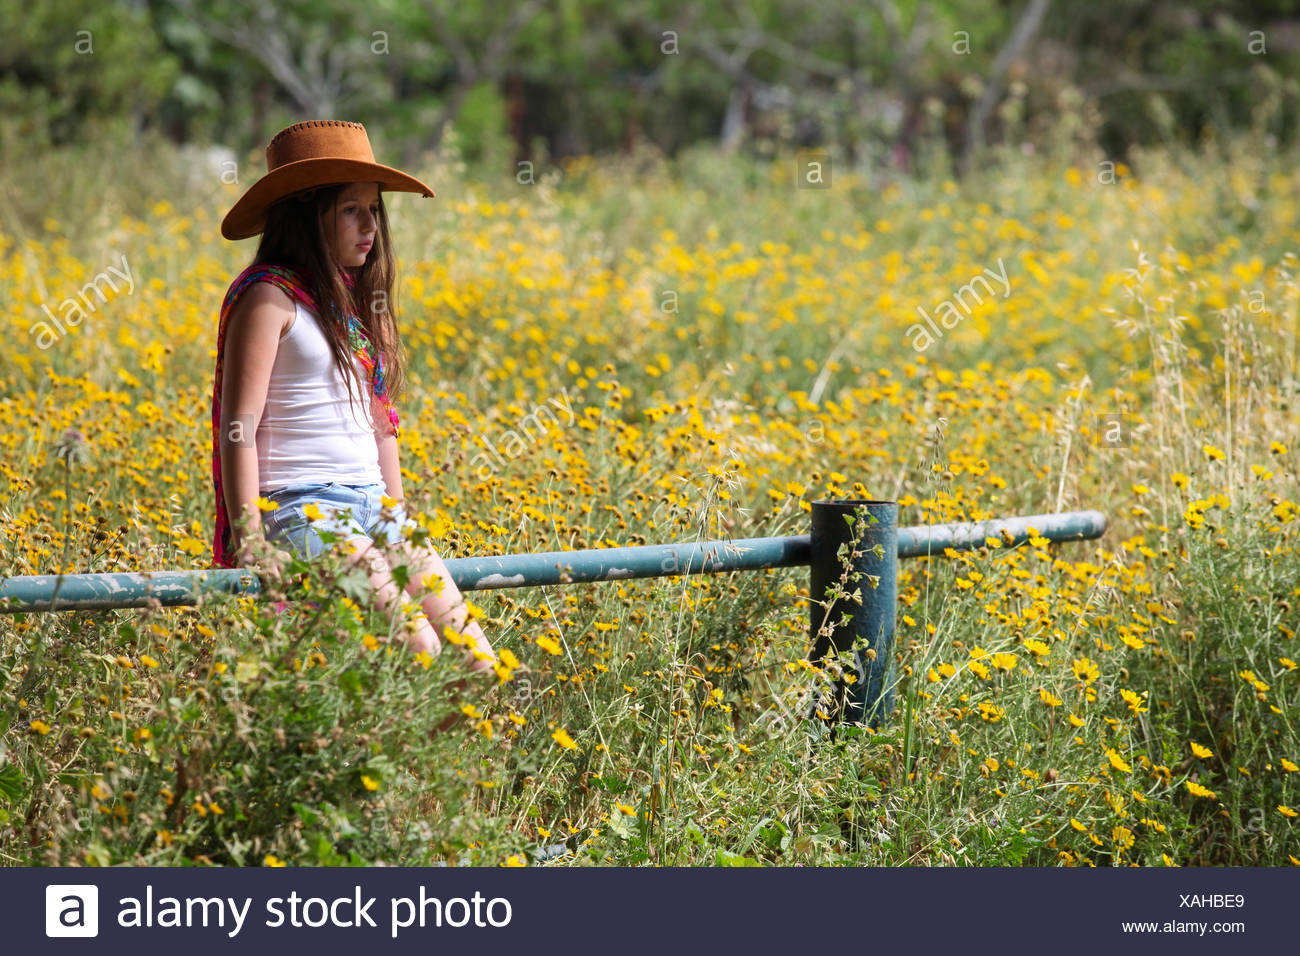 Sullen girl in cowboy hat sitting on fence in field Photo Stock